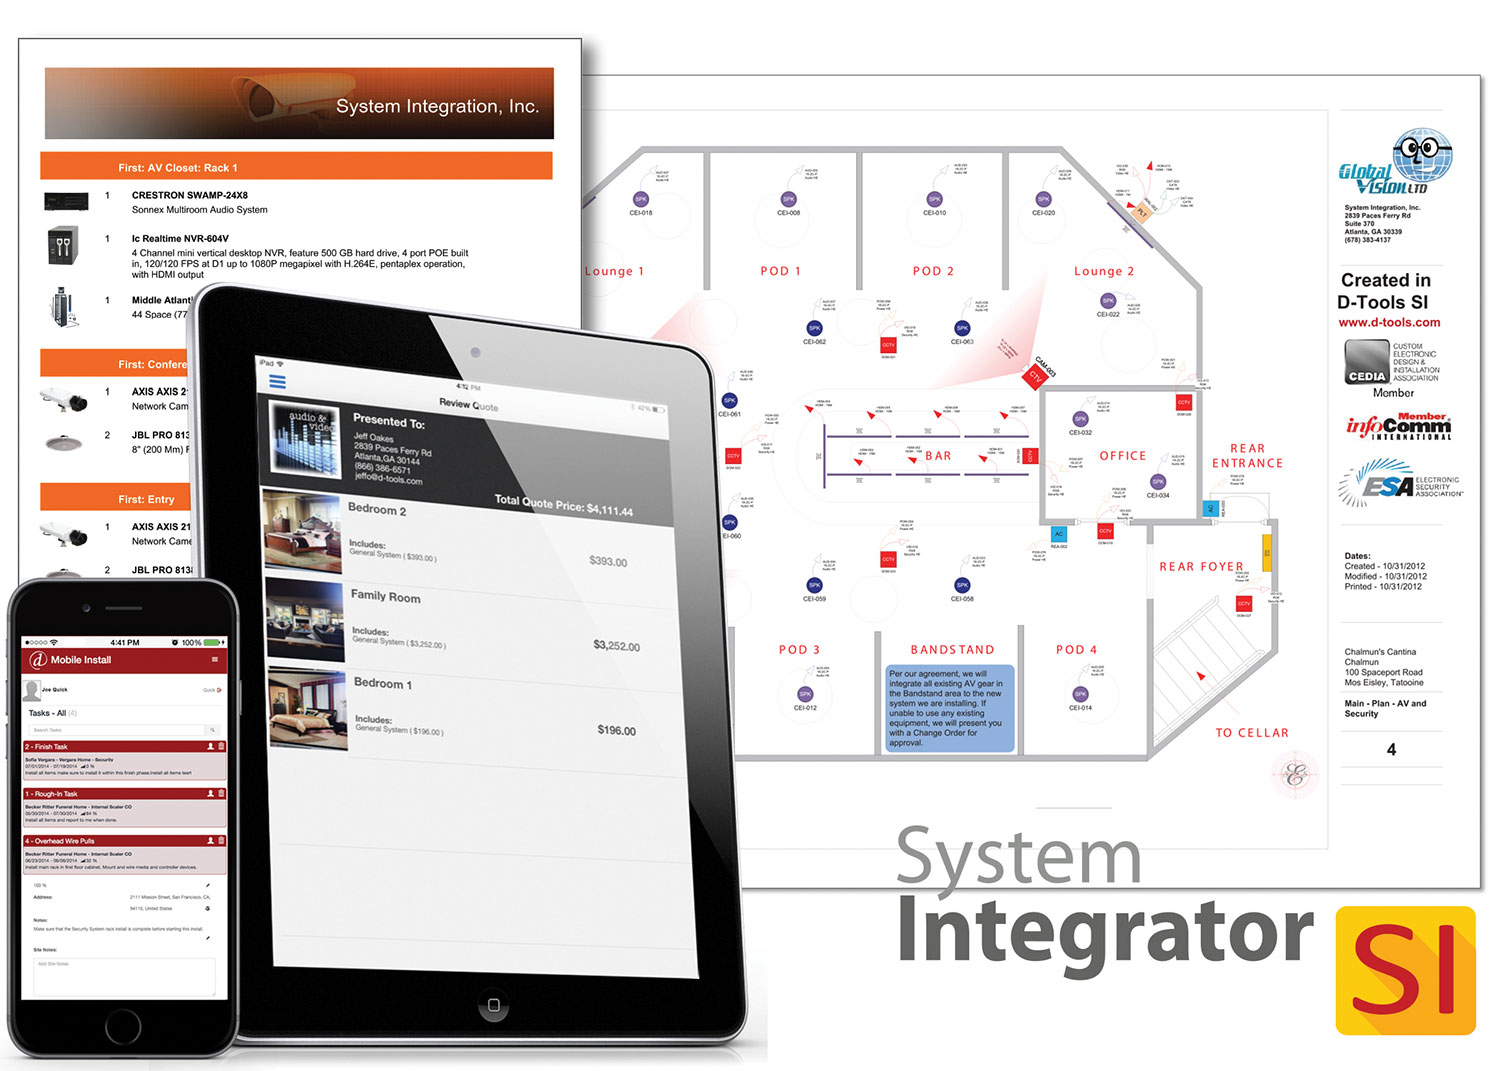 D-Tools System Integrator 2016 uses a cloud-based infrastructure to streamline the complex workflow of collaborative system design, estimation and project management.